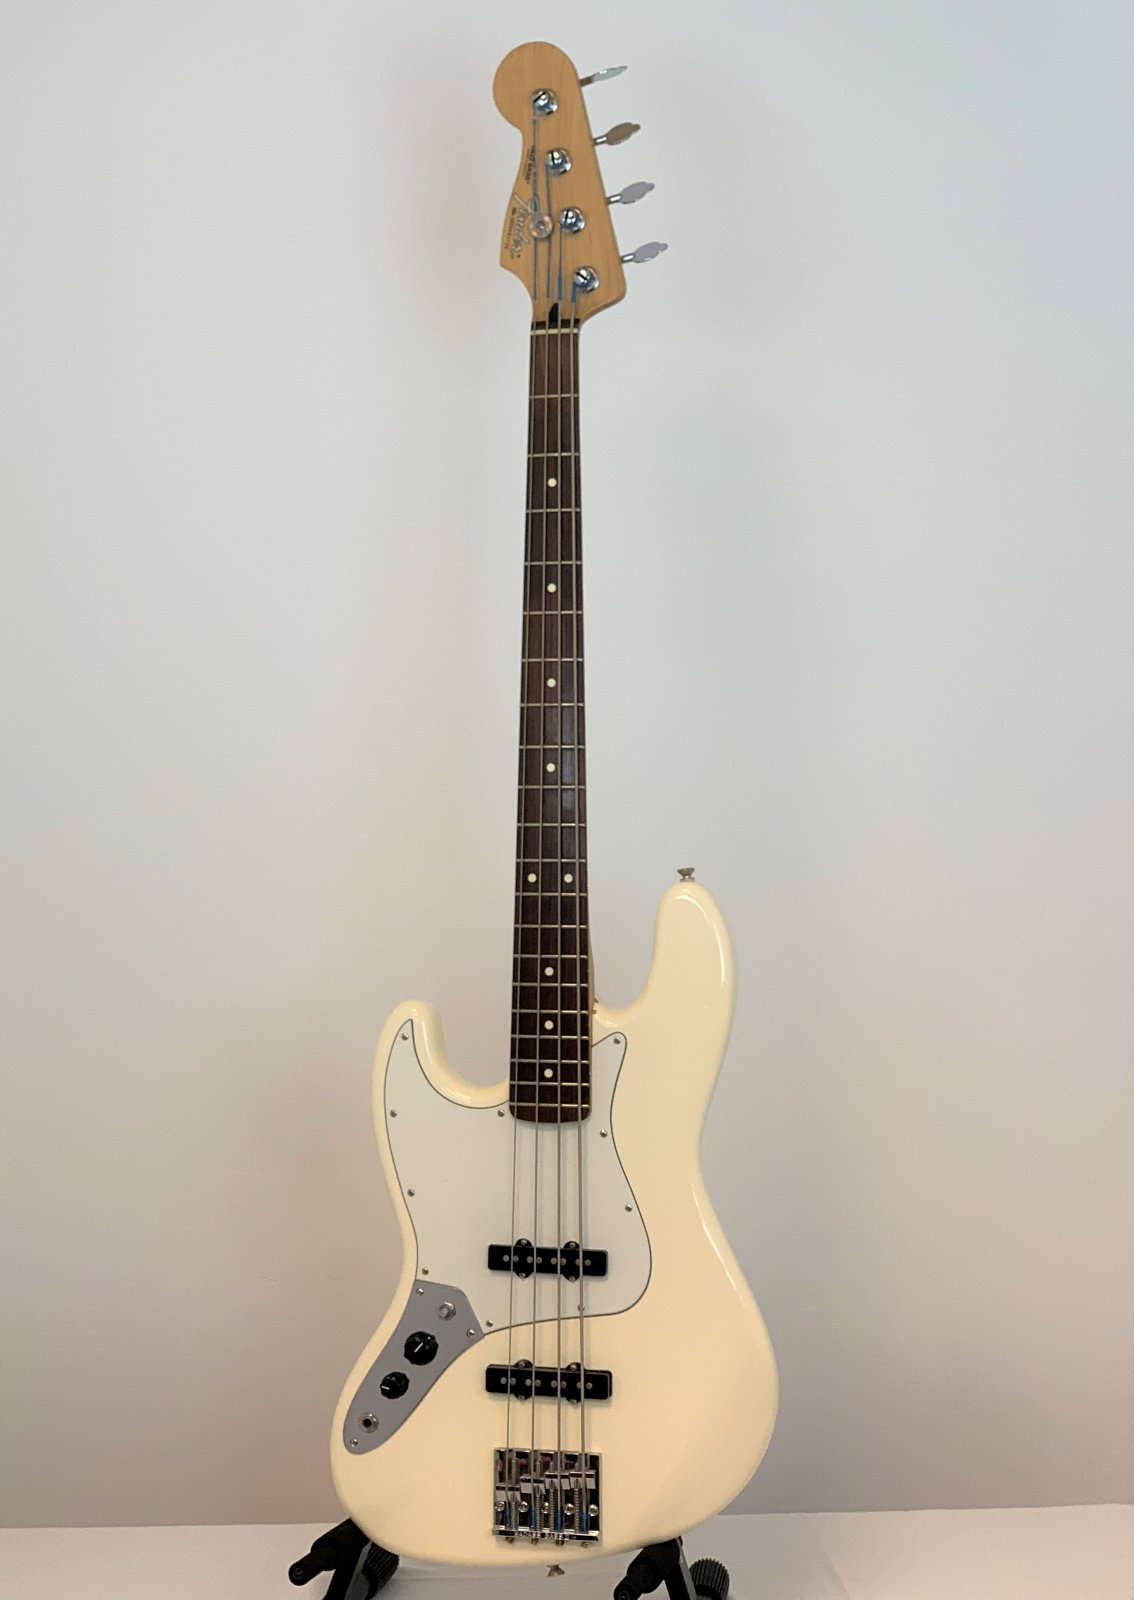 USED LEFTY Fender Standard Jazz Bass White Made in Mexico